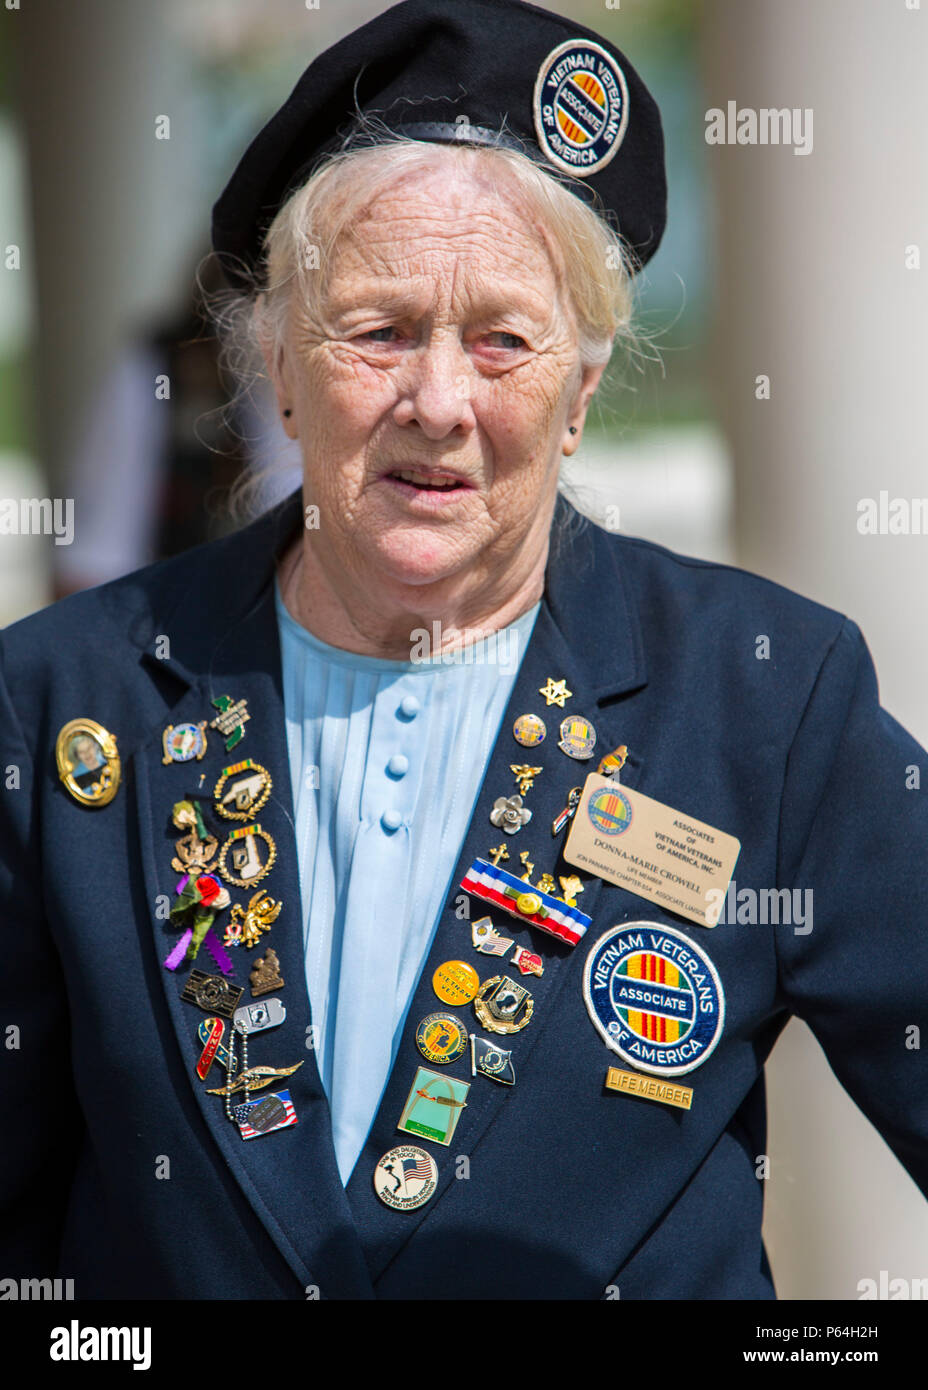 Donna-Marie Crowell, life member of the Vietnam Veterans of America Incorporated, Chapter 654, socializes with guests during the Vietnam War ceremony at the Lejeune Memorial Gardens in Jacksonville, N.C., April 30, 2016. The ceremony honors all those who sacrificed while celebrating the accomplishments and perseverance of all Vietnam-era veterans. (U.S. Marine Corps photo by Lance Cpl. Austin M. Livingston, MCIEAST Combat Camera/Released) - Stock Image